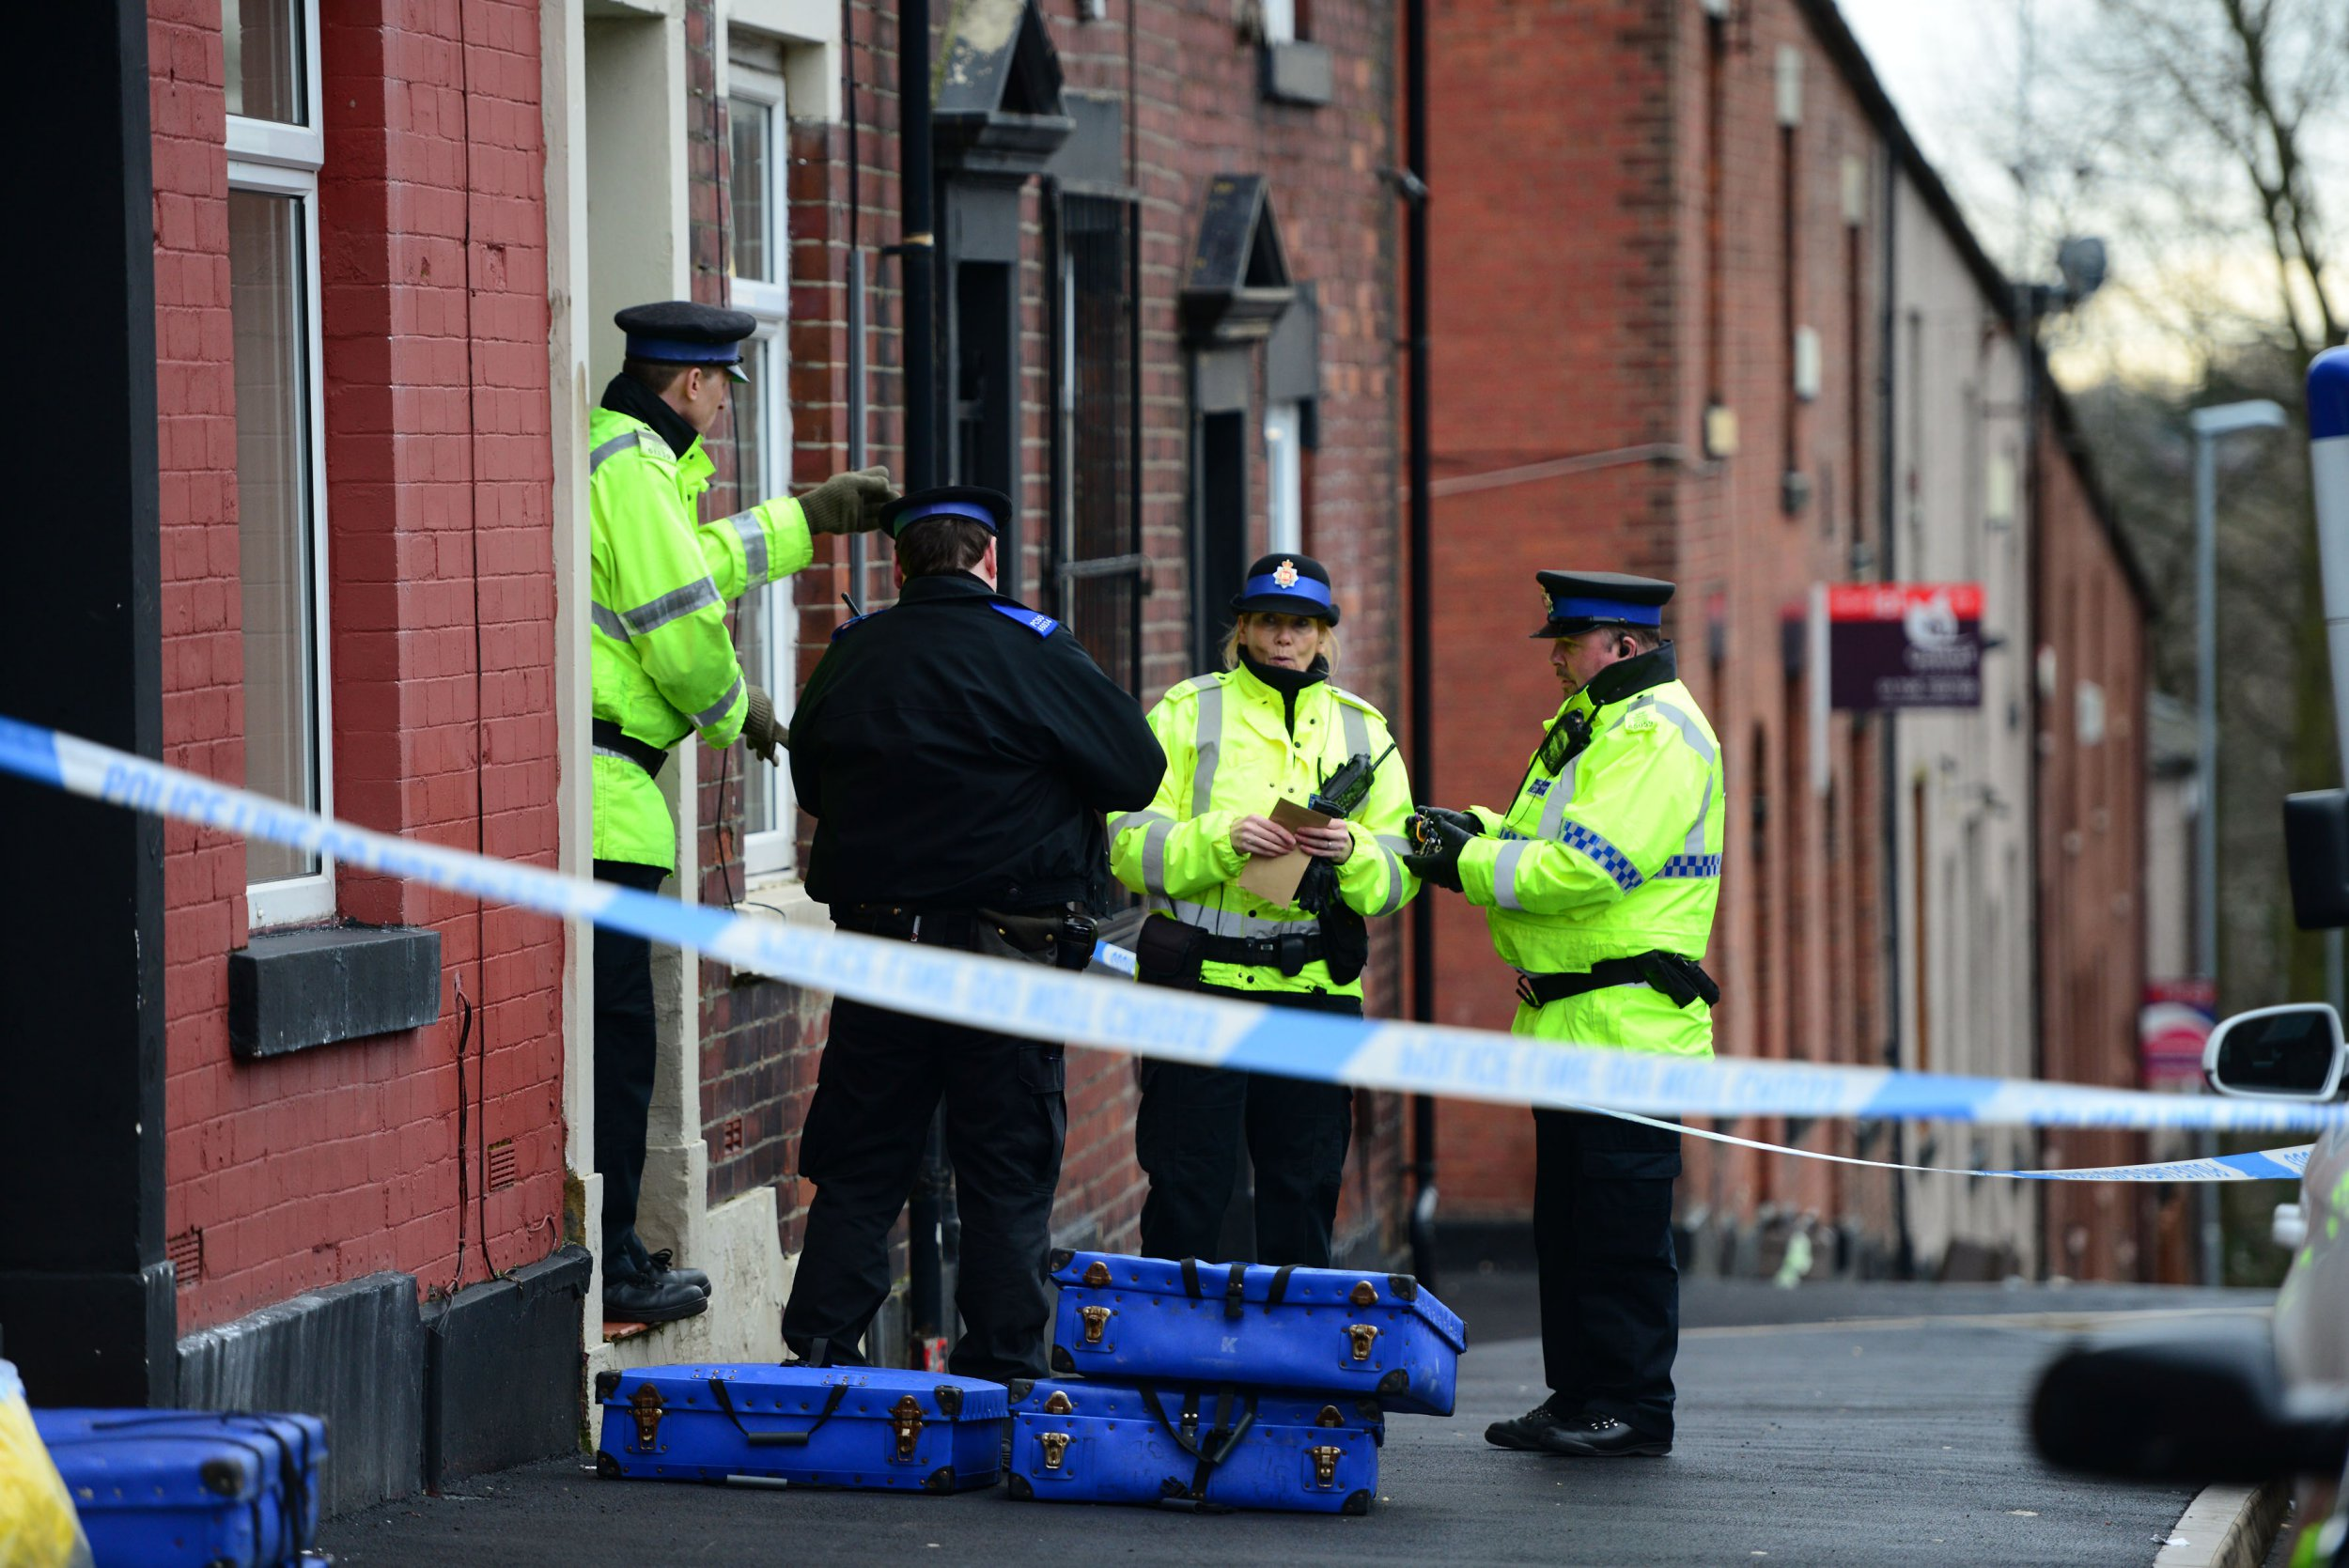 A mum was stabbed to death by her son-in-law after helping her daughter escape an arranged marriage, a court heard. Muhammad Tafham, 31, is alleged to have murdered Rahman Begum, 46, at her home in Rochdale, Greater Manchester, days after her daughter, Aysha, 25, left him to move back in with her long-term boyfriend. Caption: Police cordon on Clement Royds Street in Rochdale, Greater Manchester, where Rahman Begum was stabbed to death on February 7, 2018